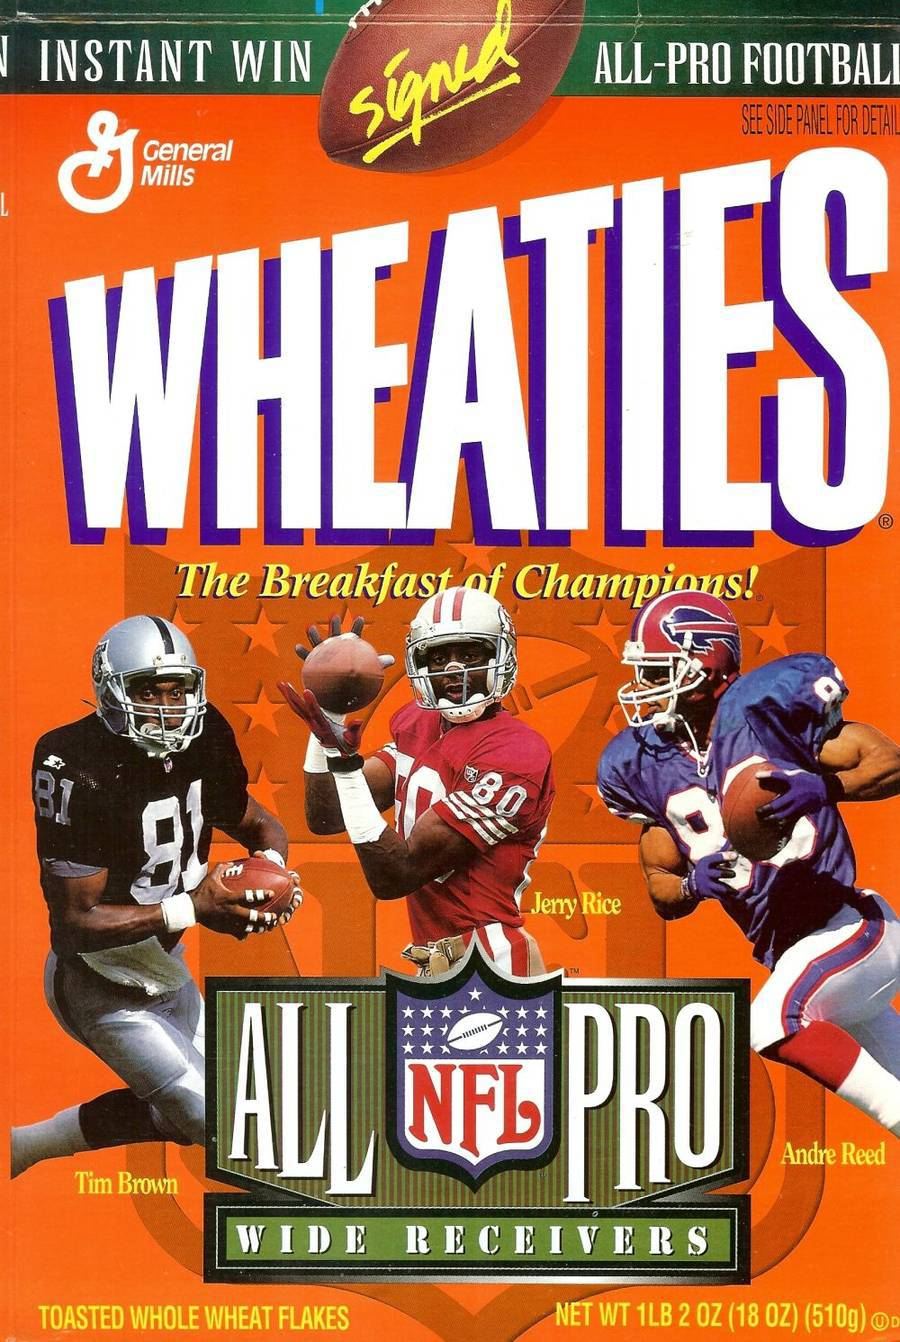 Primary image for wheaties cereal box all pro wide receivers tim brown jerry rice andre reed autog